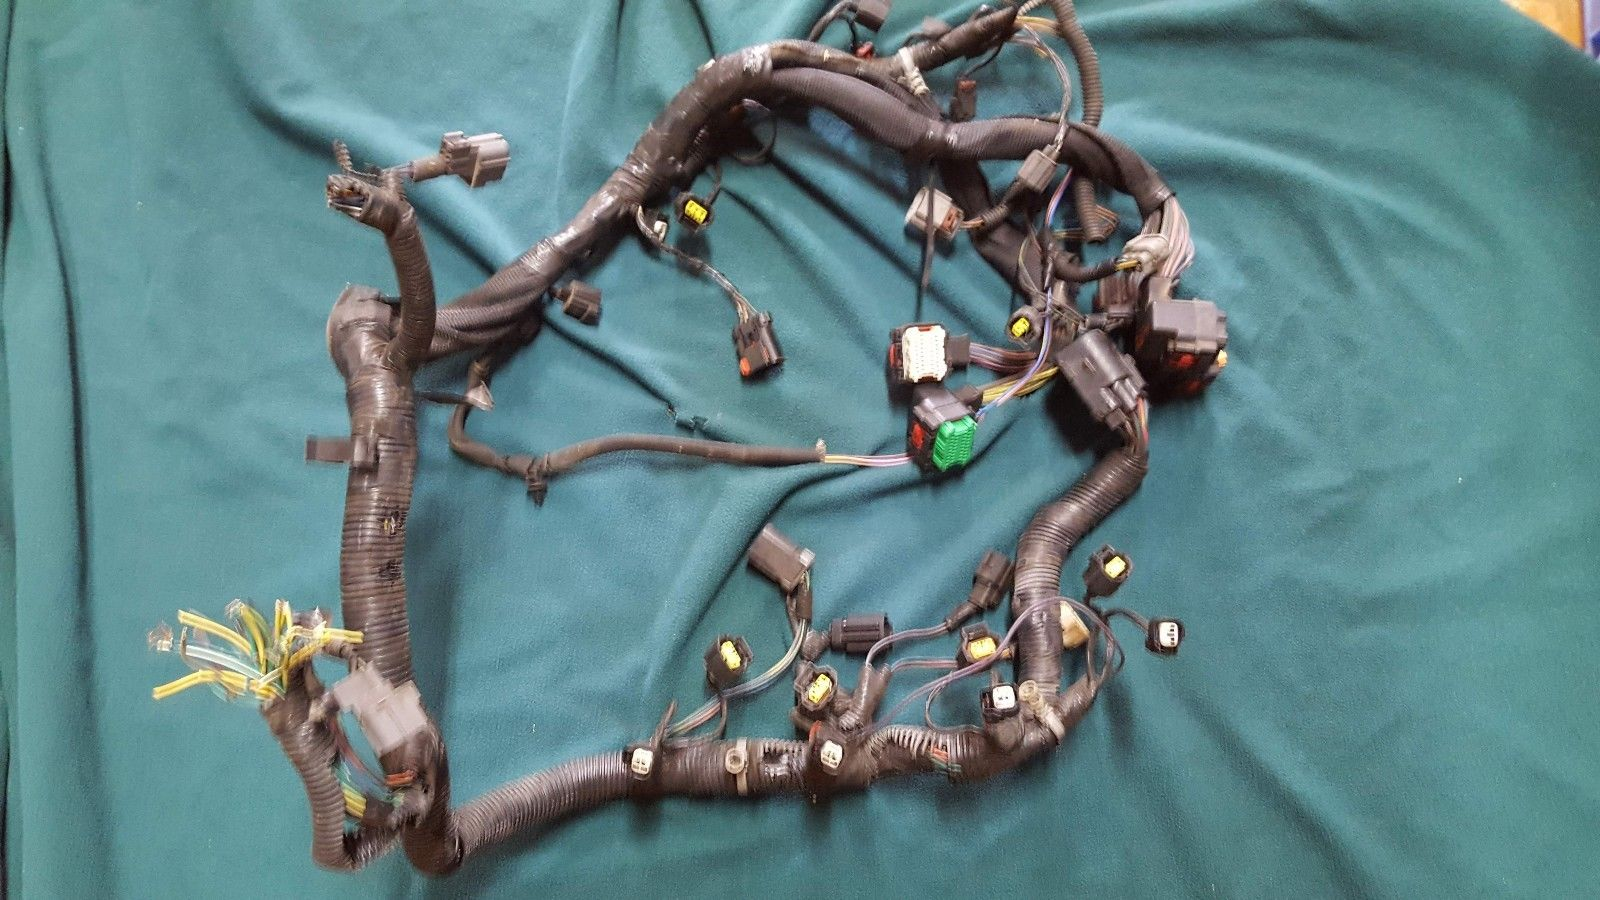 Johns Store On Buy Auto Parts Car Truck Jeep Commander Wiring Harness 2008 Engine Motor Electrical Wire 47l Incomplete